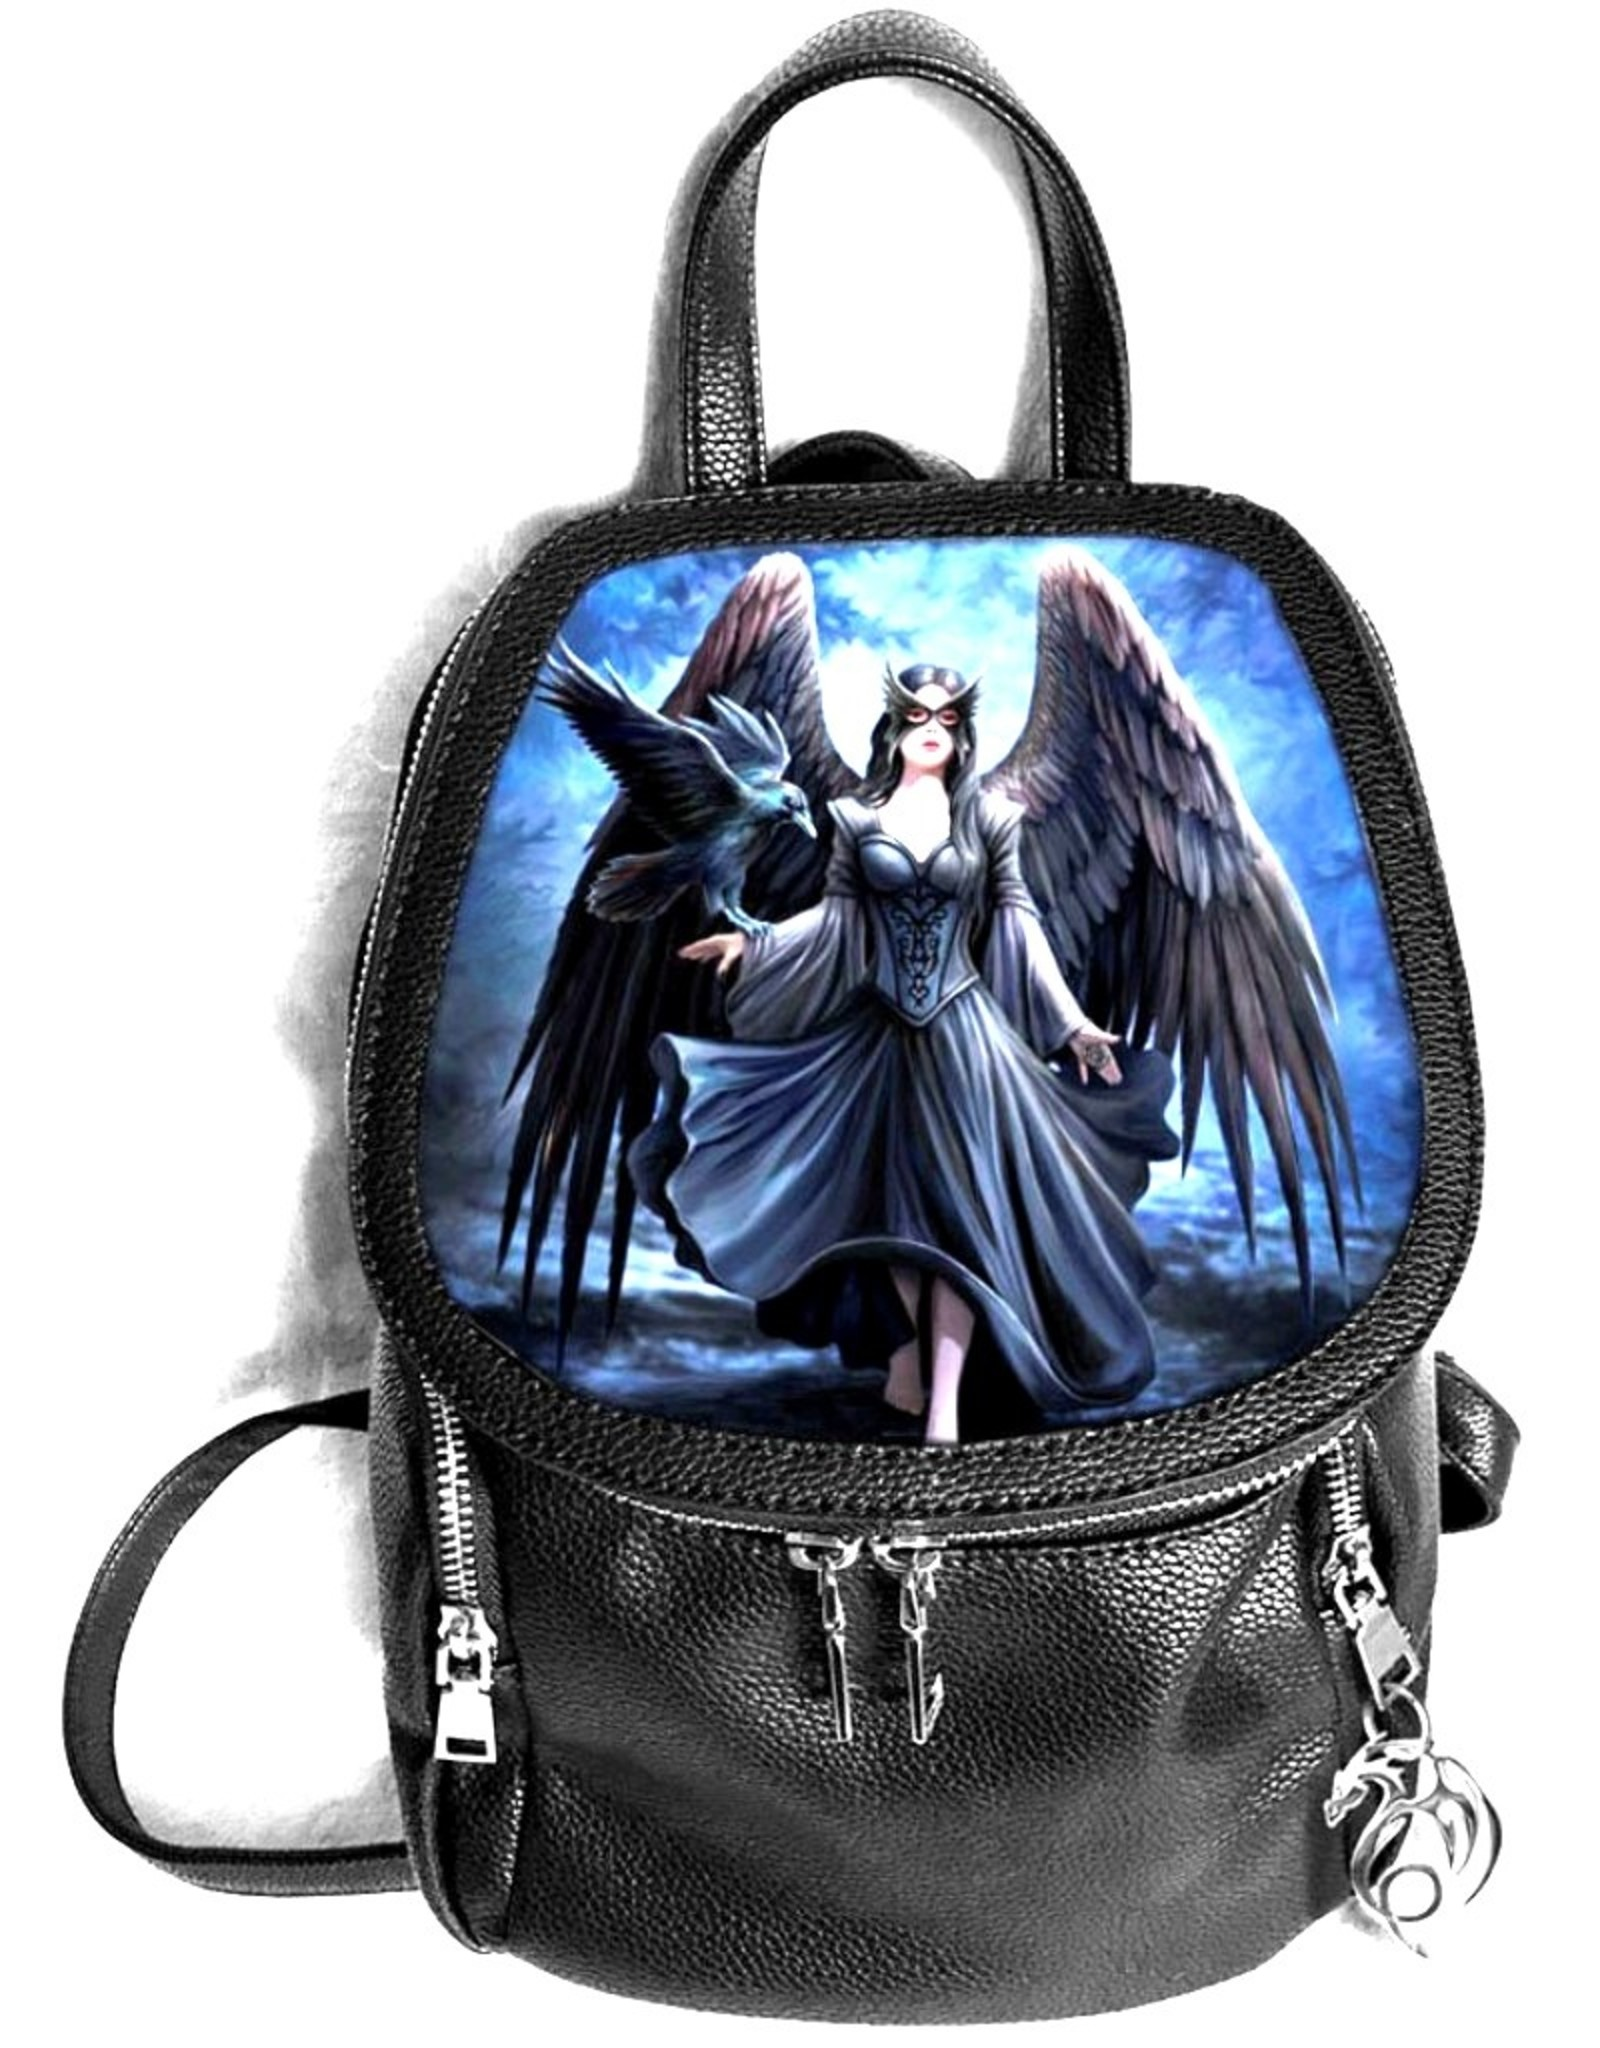 Anne Stokes Gothic bags Steampunk bags - Anne Stokes Dark Engel and Raven backpack 3D